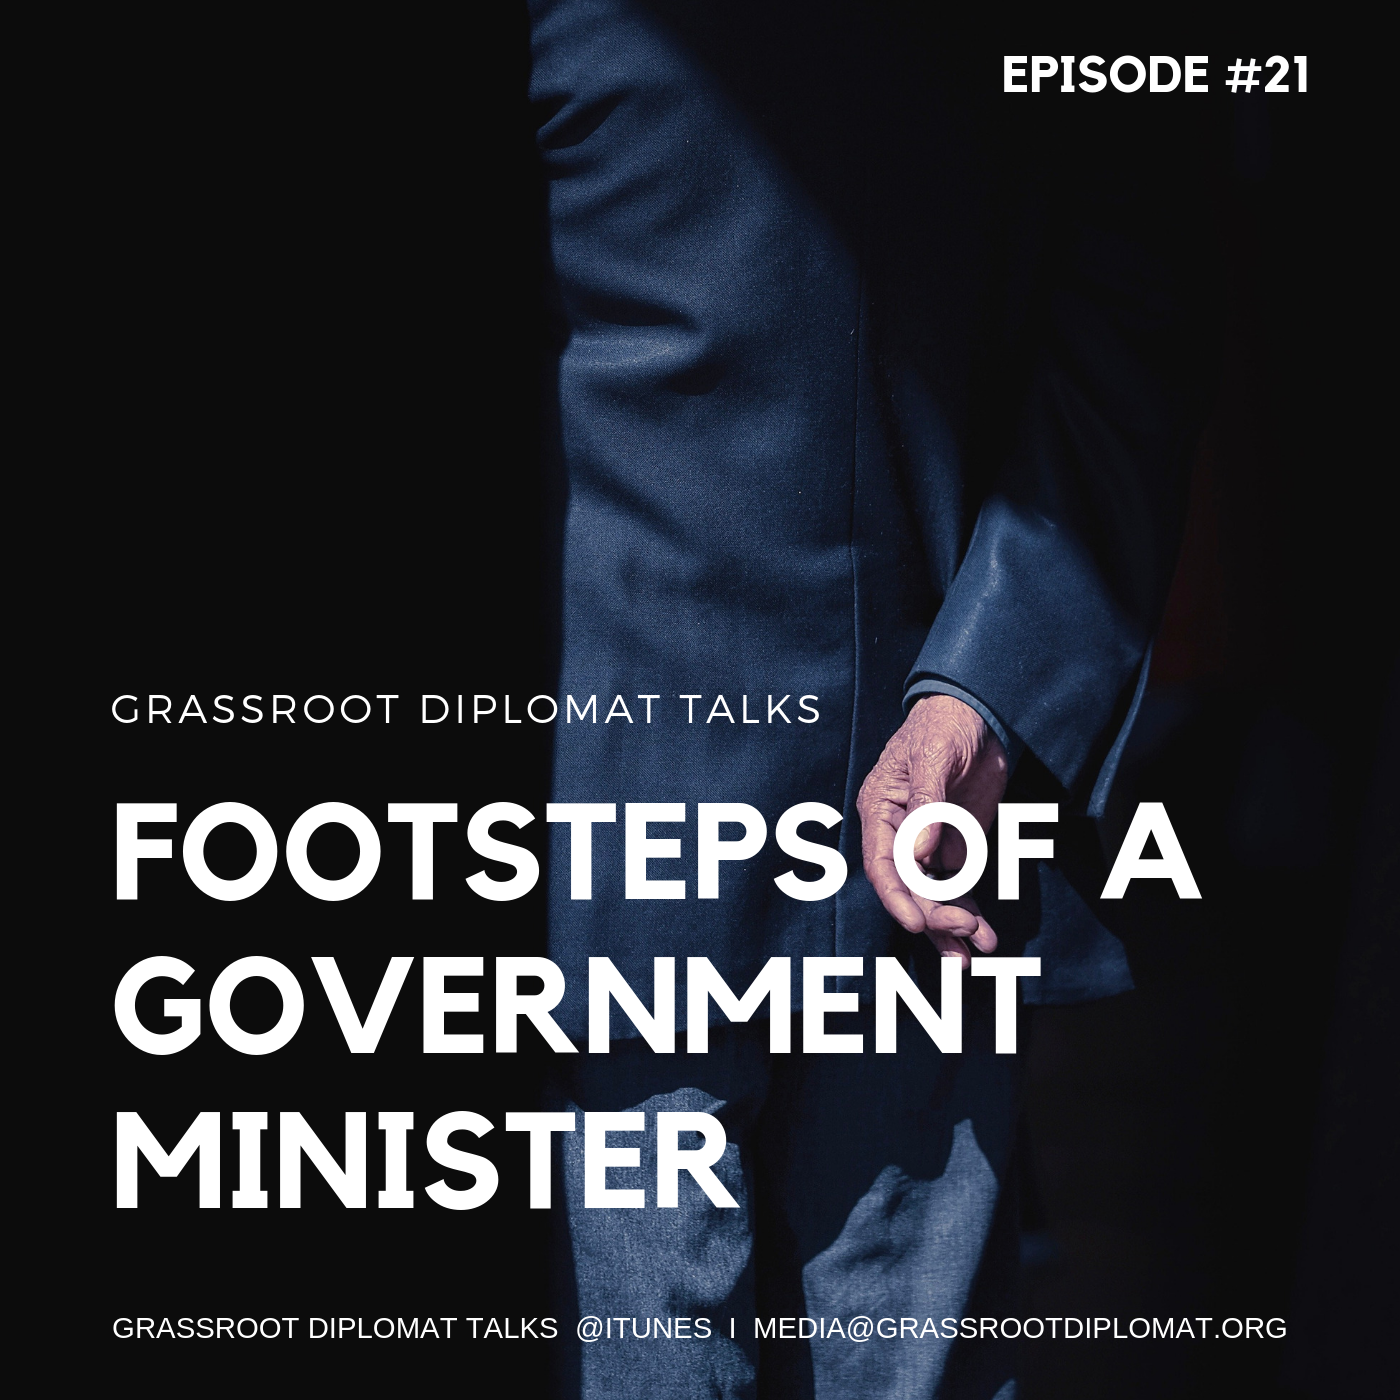 021 Footsteps of Minister.png